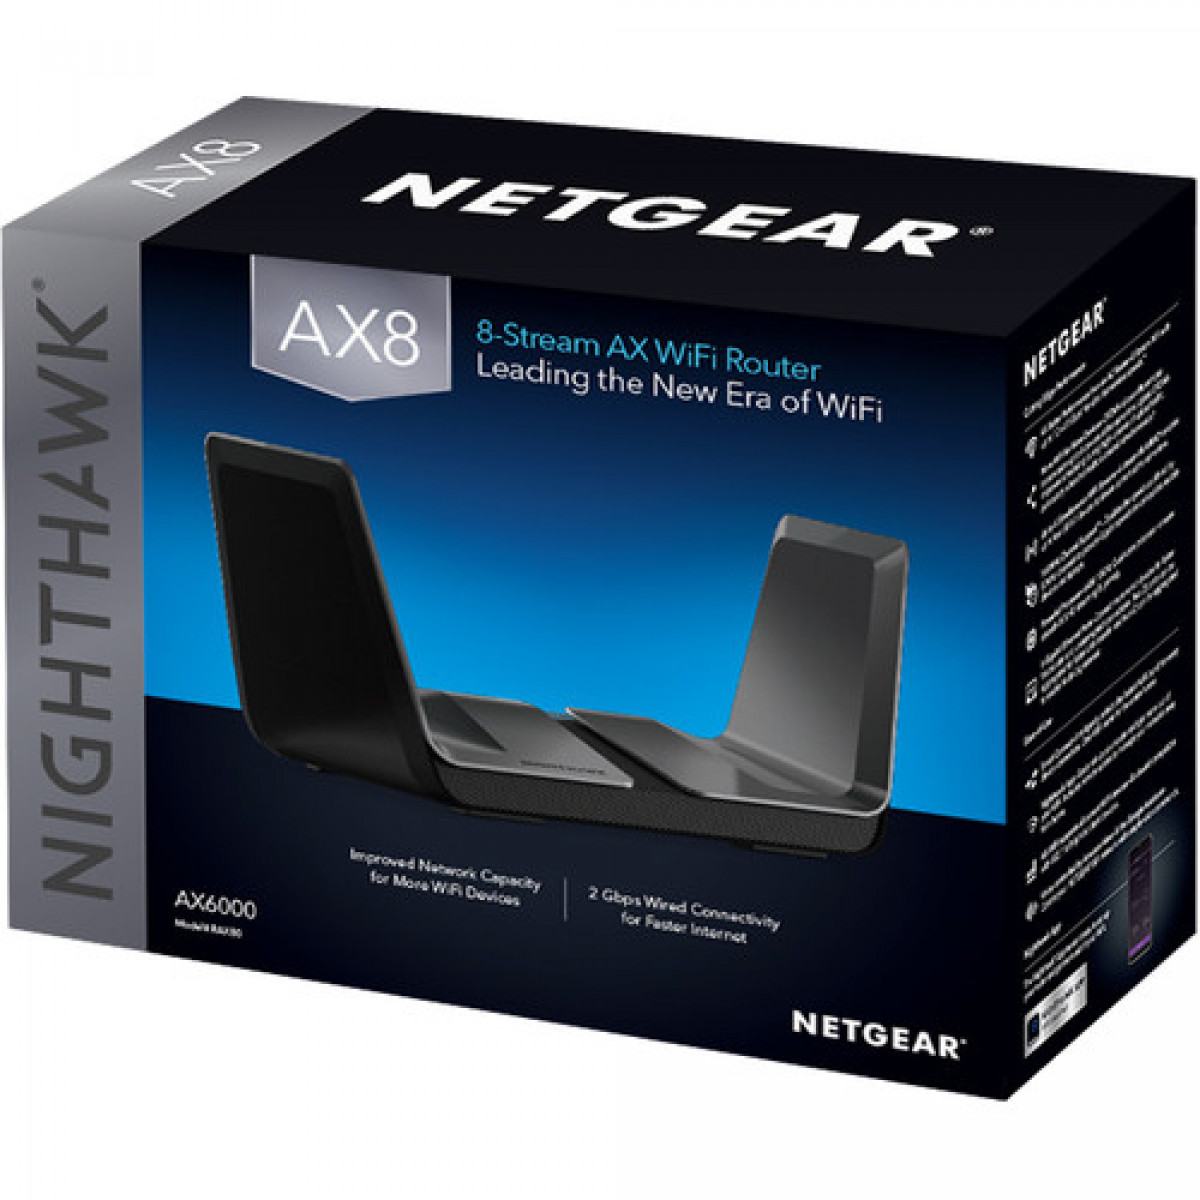 How to update Netgear Nighthawk AX8 Wi-Fi 6 router automatically?